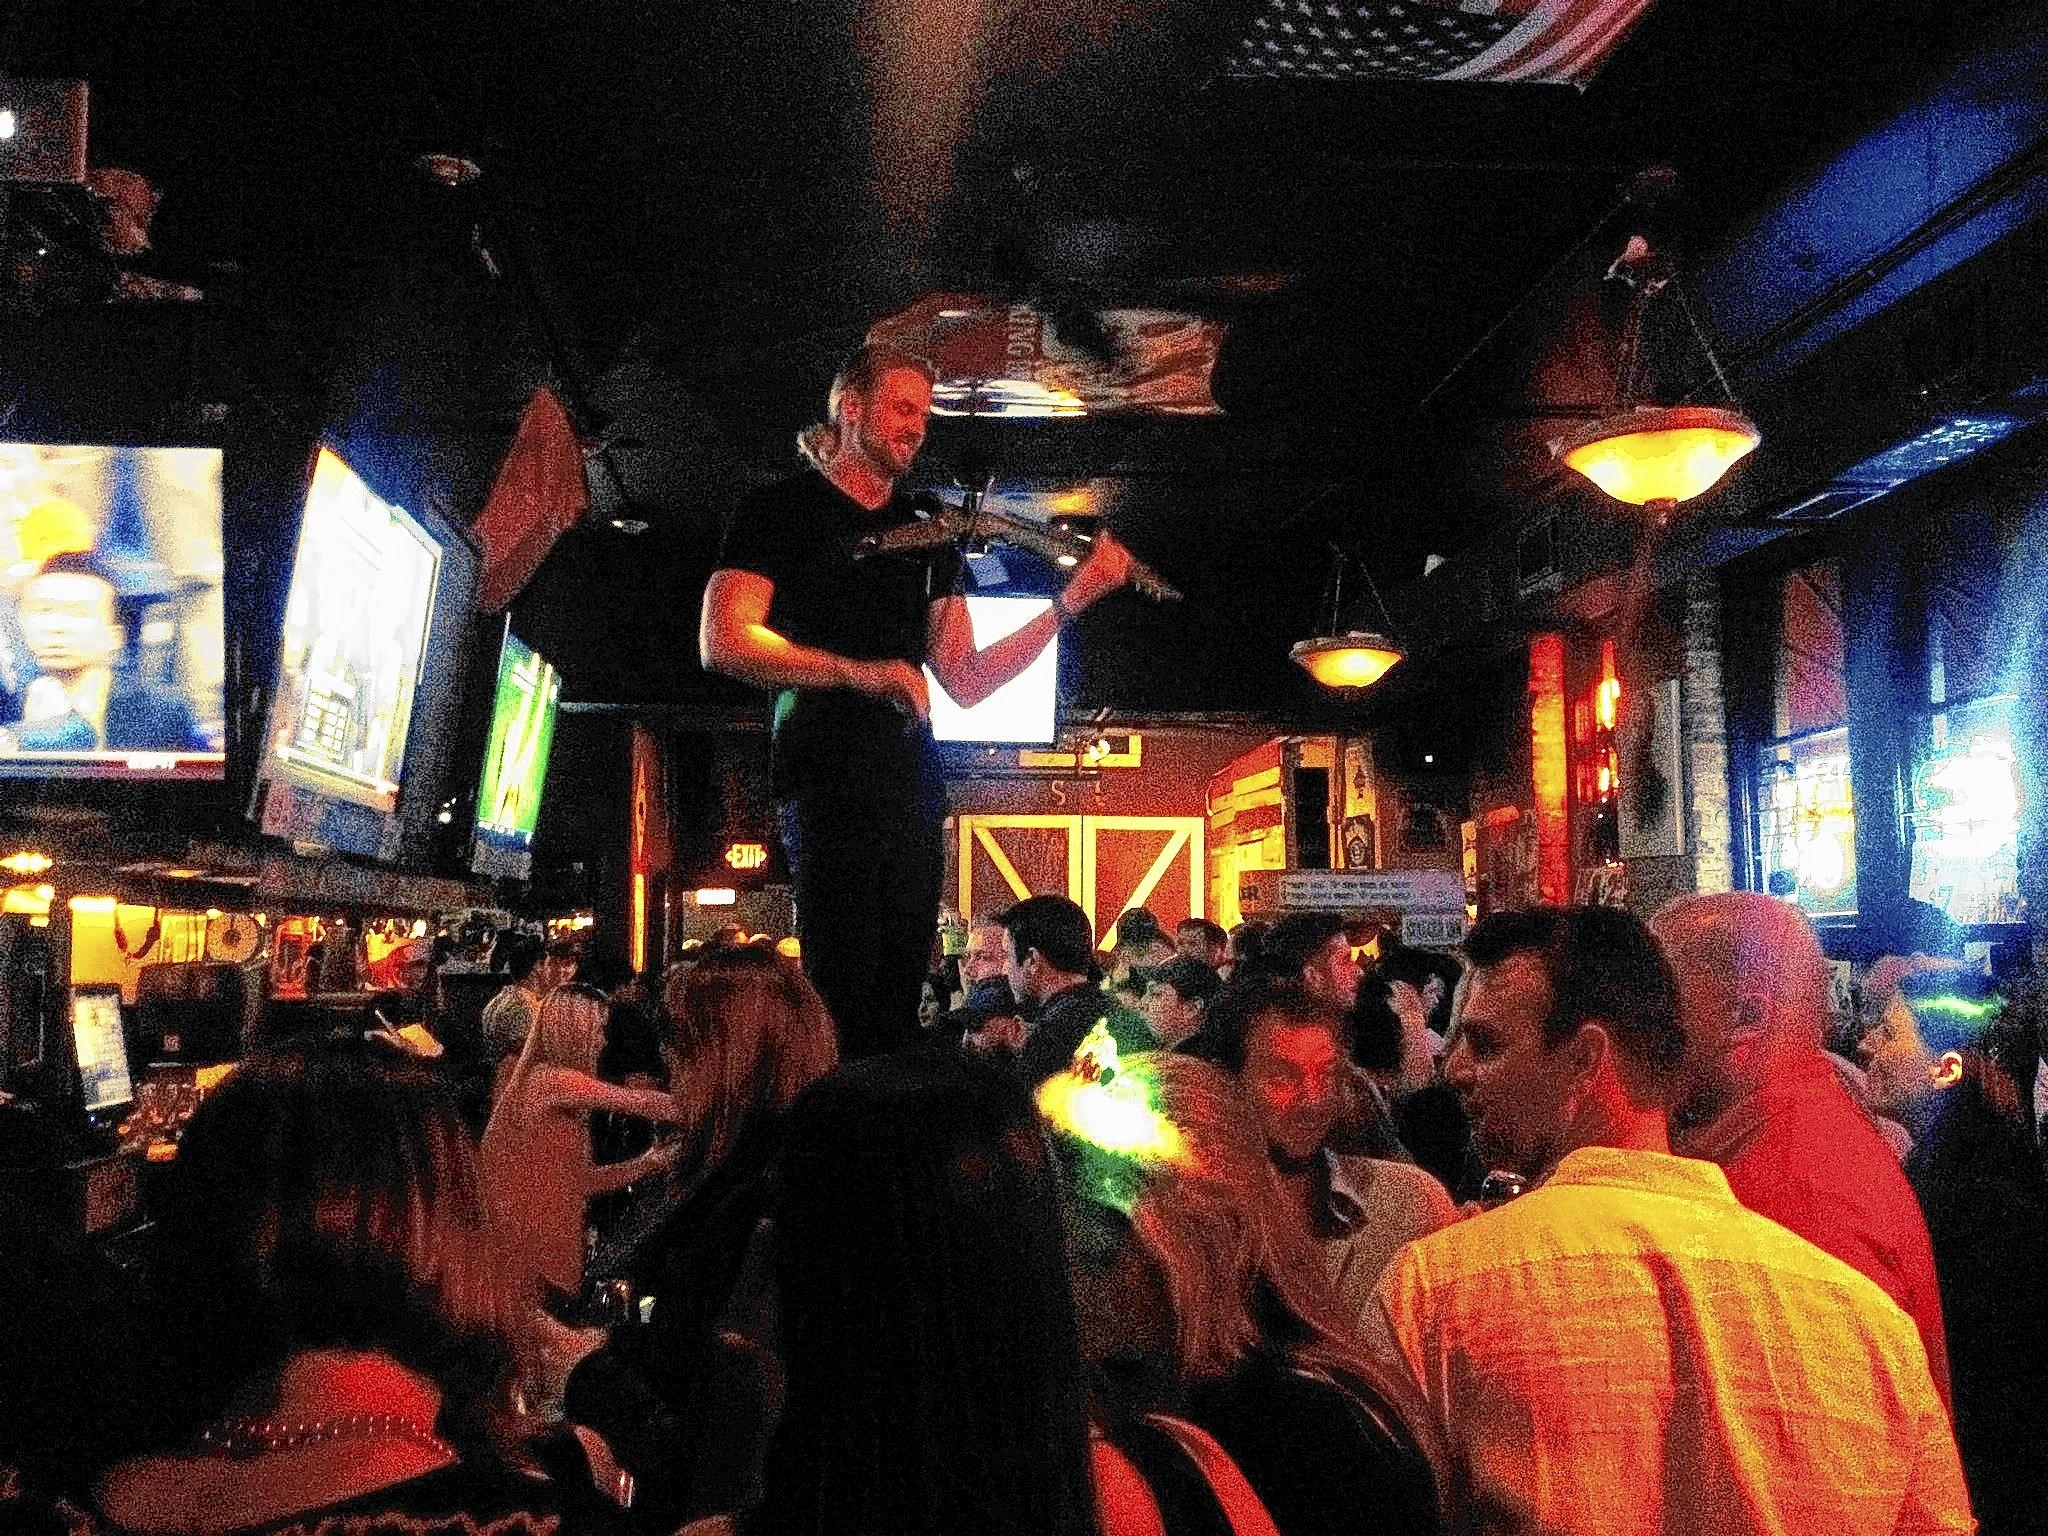 Fiddler Jared Burnett plays pied piper from the bar at Stagger Inn.